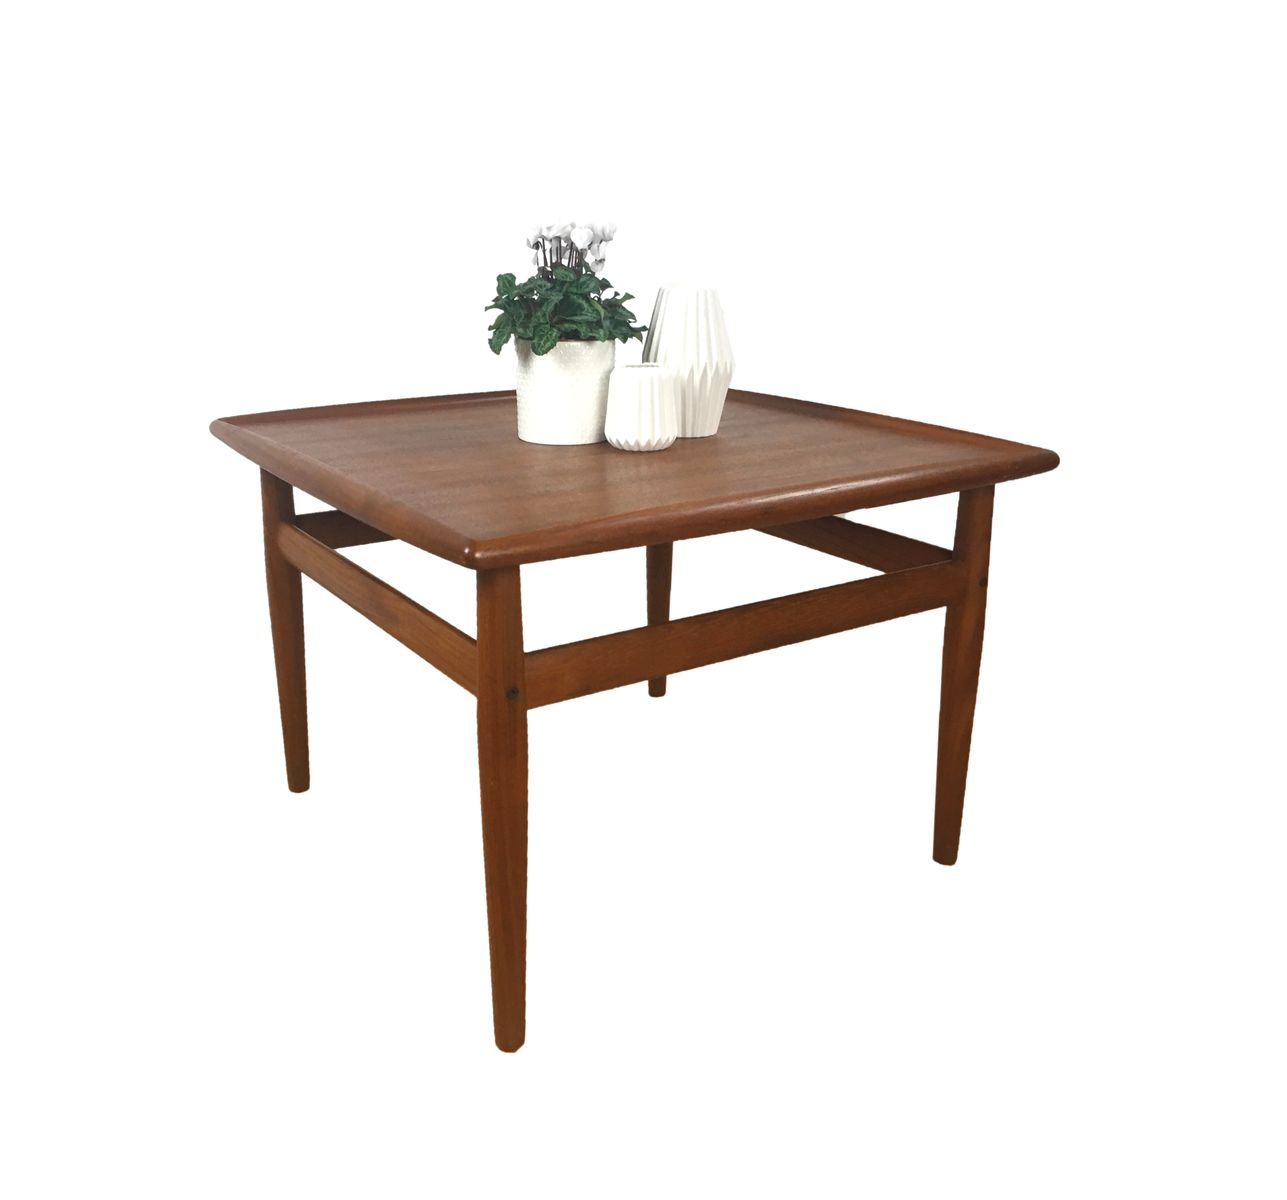 Antique Teak Coffee Table: Vintage Teak Coffee Table By Grete Jalk For Glostrup